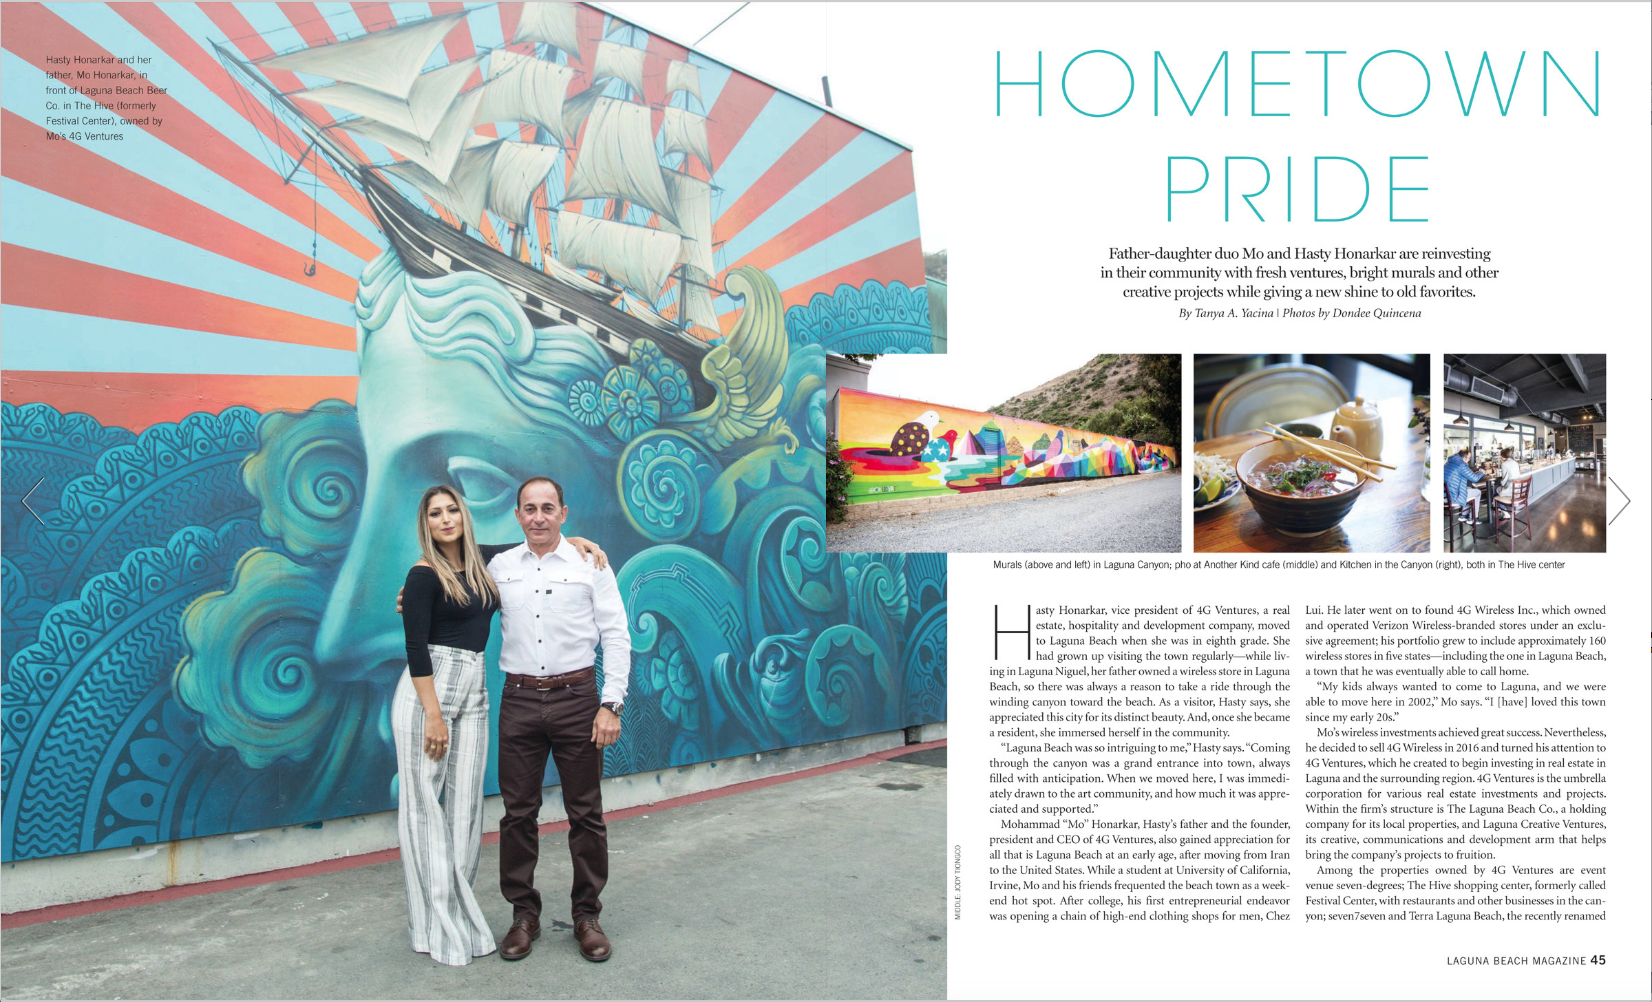 """Hometown Pride    Hasty Honarkar, vice president of 4G Ventures, a real estate, hospitality and development company, moved to Laguna Beach when she was in eighth grade. She had grown up visiting the town regularly—while living in Laguna Niguel, her father owned a wireless store in Laguna Beach, so there was always a reason to take a ride through the winding canyon toward the beach. As a visitor, Hasty says, she appreciated this city for its distinct beauty. And, once she became a resident, she immersed herself in the community. """"Laguna Beach was so intriguing to me,"""" Hasty says. """"Coming through the canyon was a grand entrance into town, always filled with anticipation. When we moved here, I was immediately drawn to the art community, and how much it was appreciated and supported."""" Mohammad """"Mo"""" Honarkar, Hasty's father and the founder, president and CEO of 4G Ventures, also gained appreciation for all that is Laguna Beach at an early age, after moving from Iran to the United States. While a student at University of California, Irvine, Mo and his friends frequented the beach town as a weekend hot spot. After college, his first entrepreneurial endeavor was opening a chain of high-end clothing shops for men, Chez Lui. He later went on to found 4G Wireless Inc., which owned and operated Verizon Wireless-branded stores under an exclusive agreement; his portfolio grew to include approximately 160 wireless stores in five states—including the one in Laguna Beach, a town that he was eventually able to call home. """"My kids always wanted to come to Laguna, and we were able to move here in 2002,"""" Mo says. """"I [have] loved this town since my early 20s.""""  READ MORE..."""